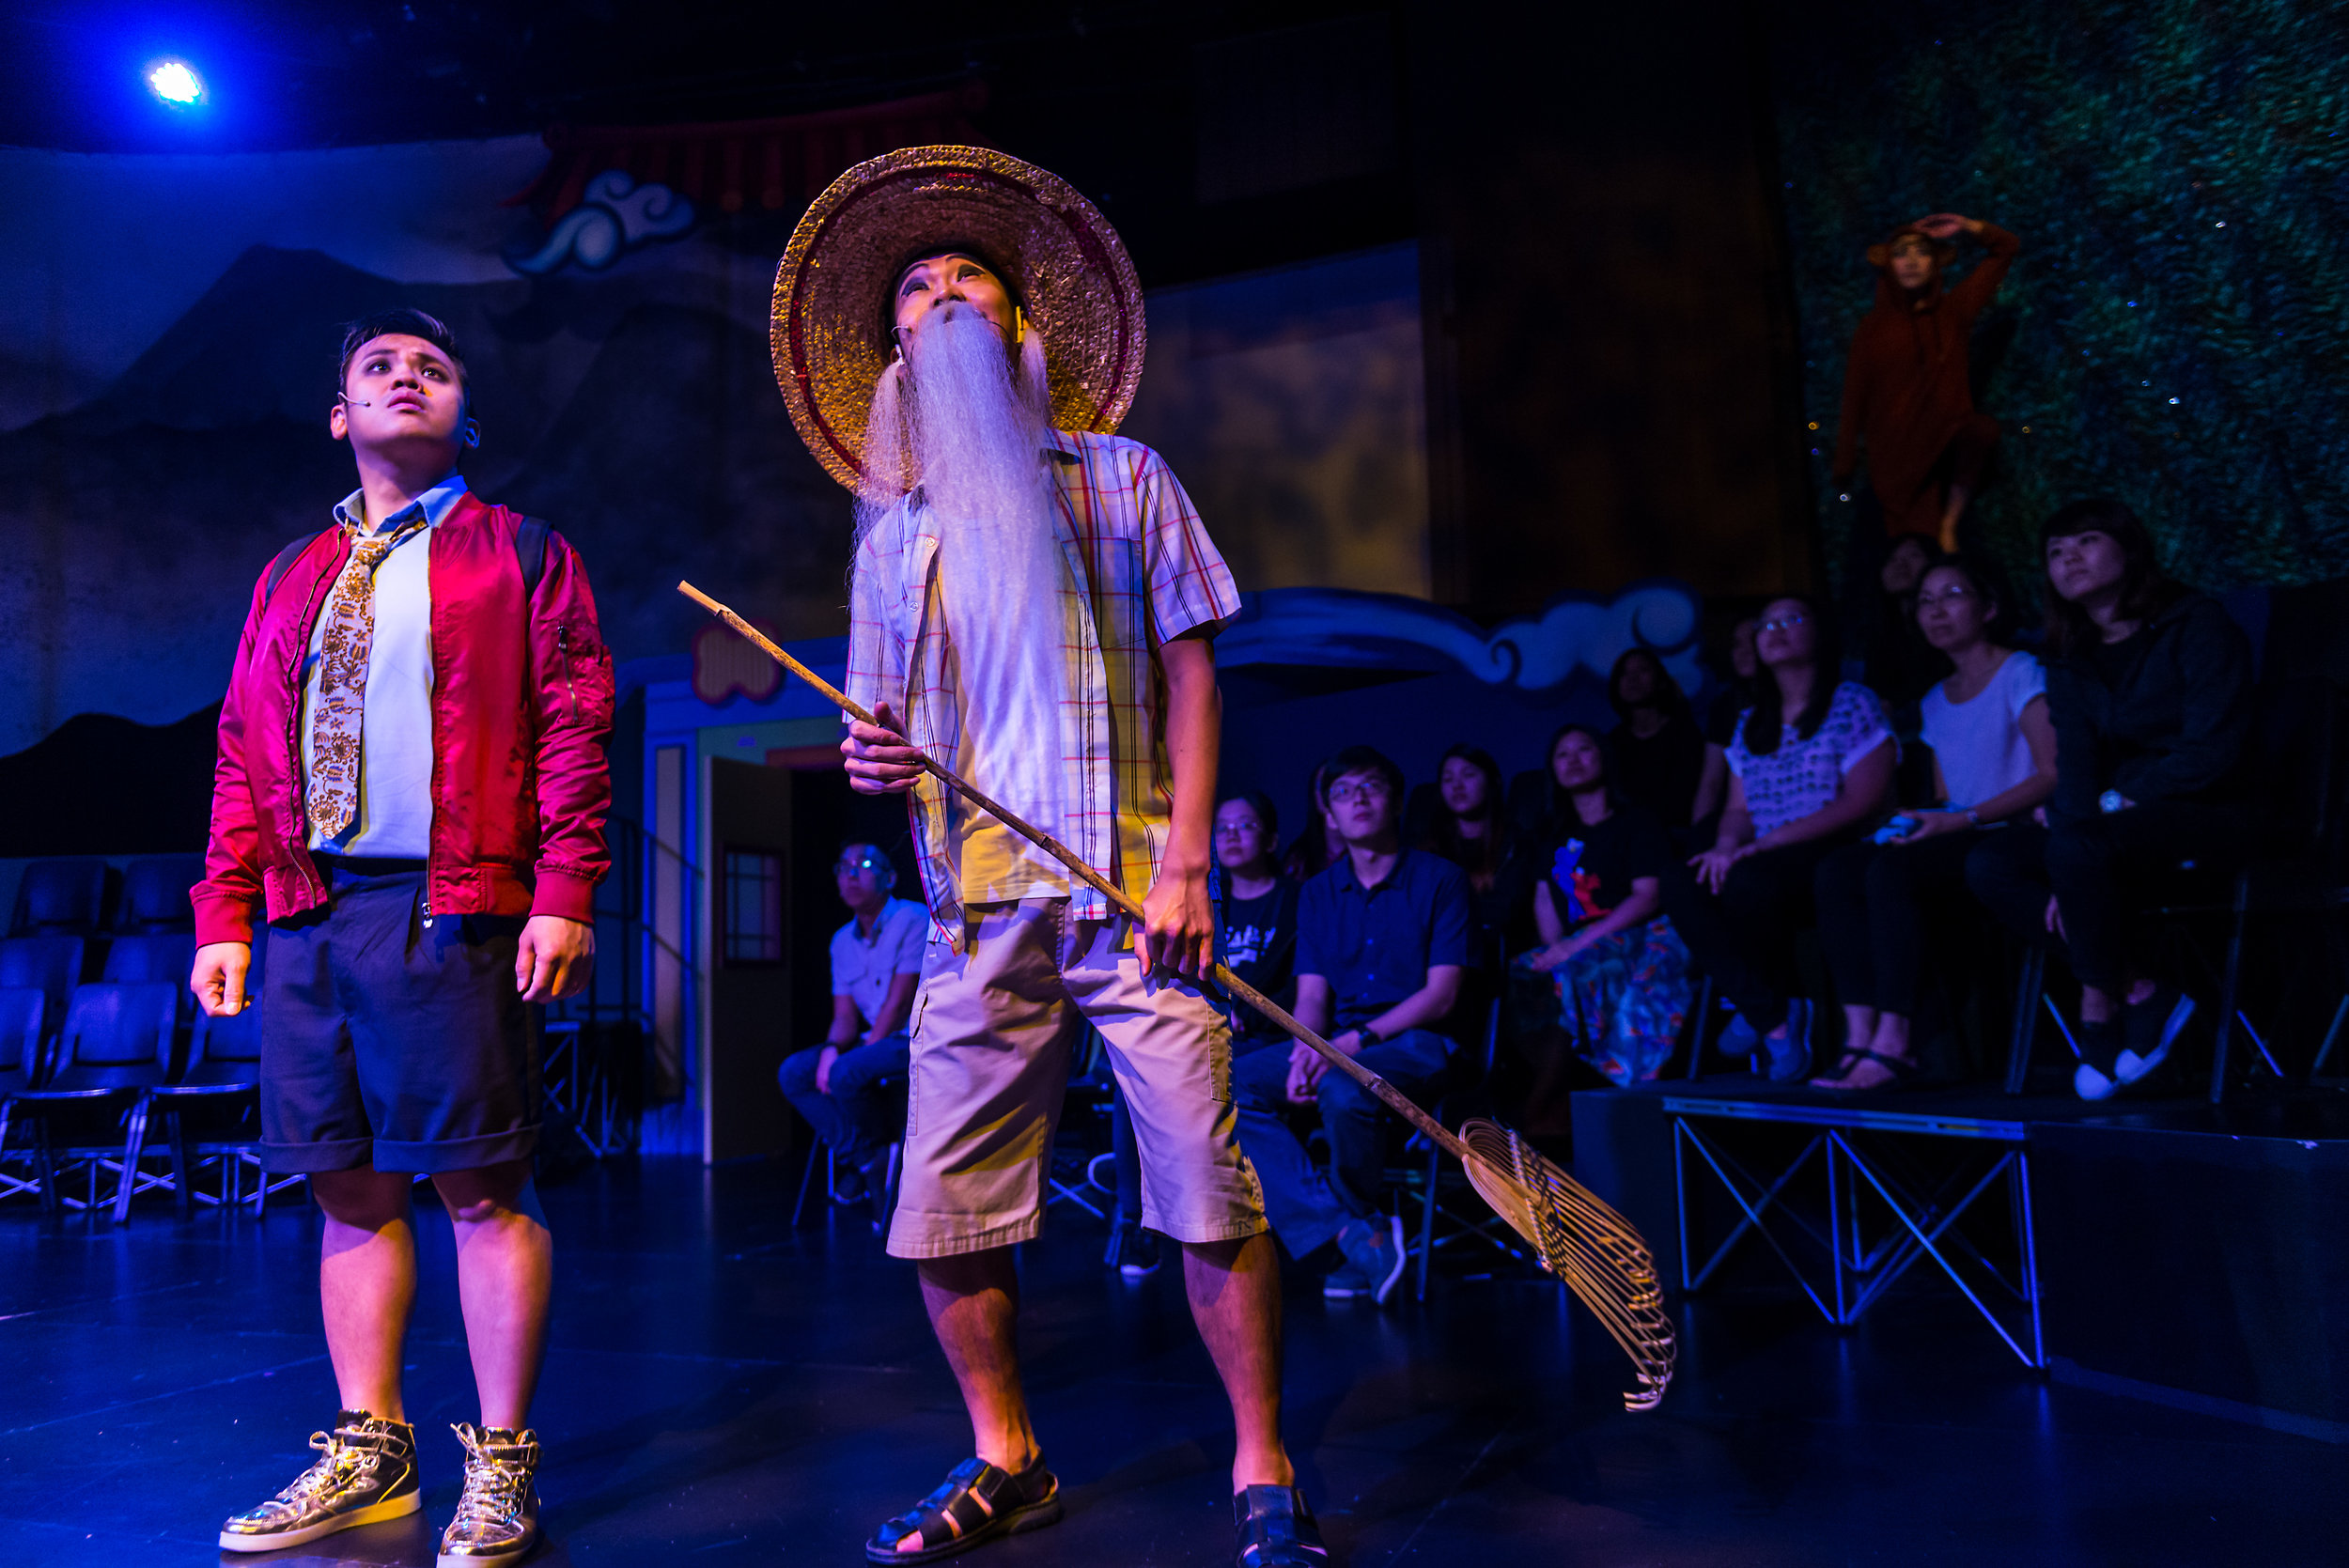 Photo by Tuckys Photography, Courtesy of The Theatre Practice